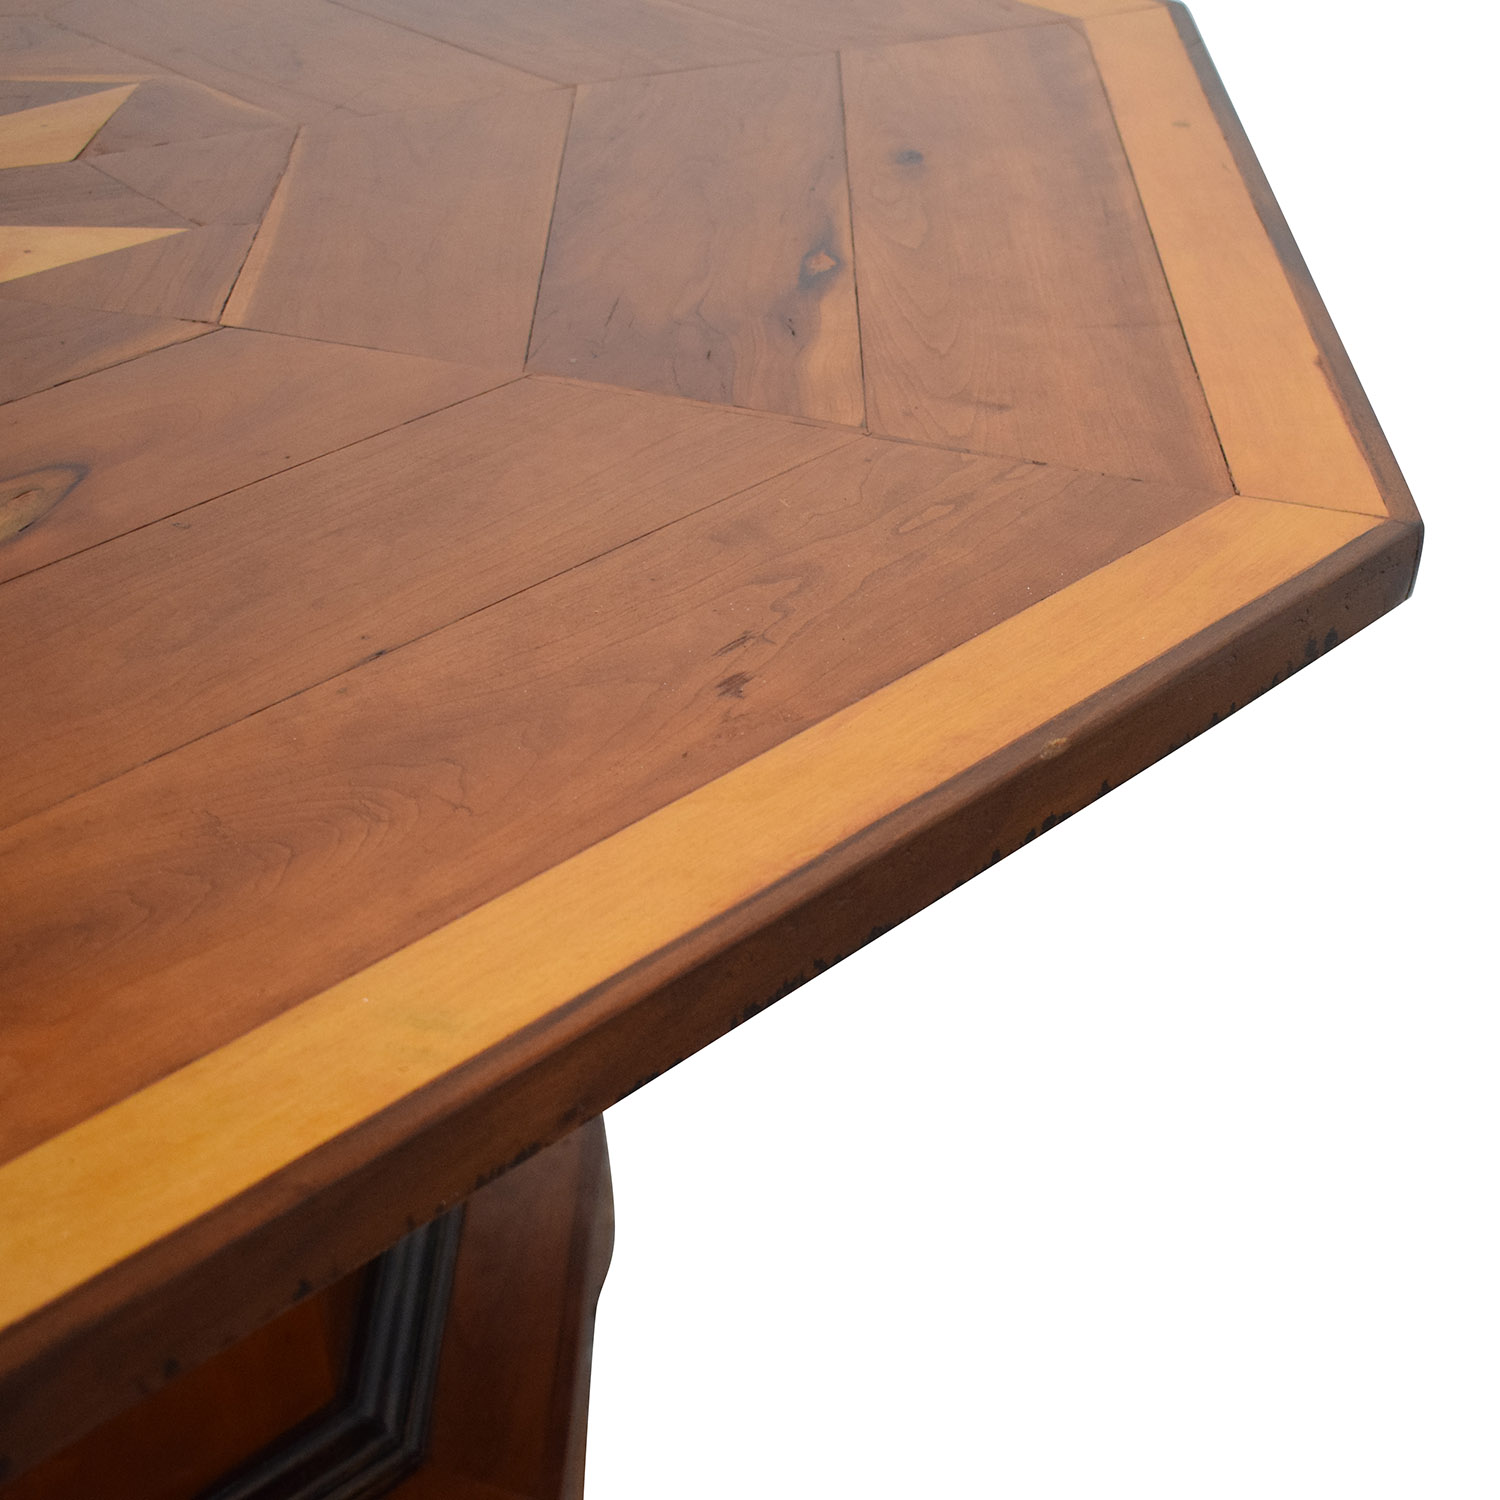 Octagonal Dining Table with Inlay used